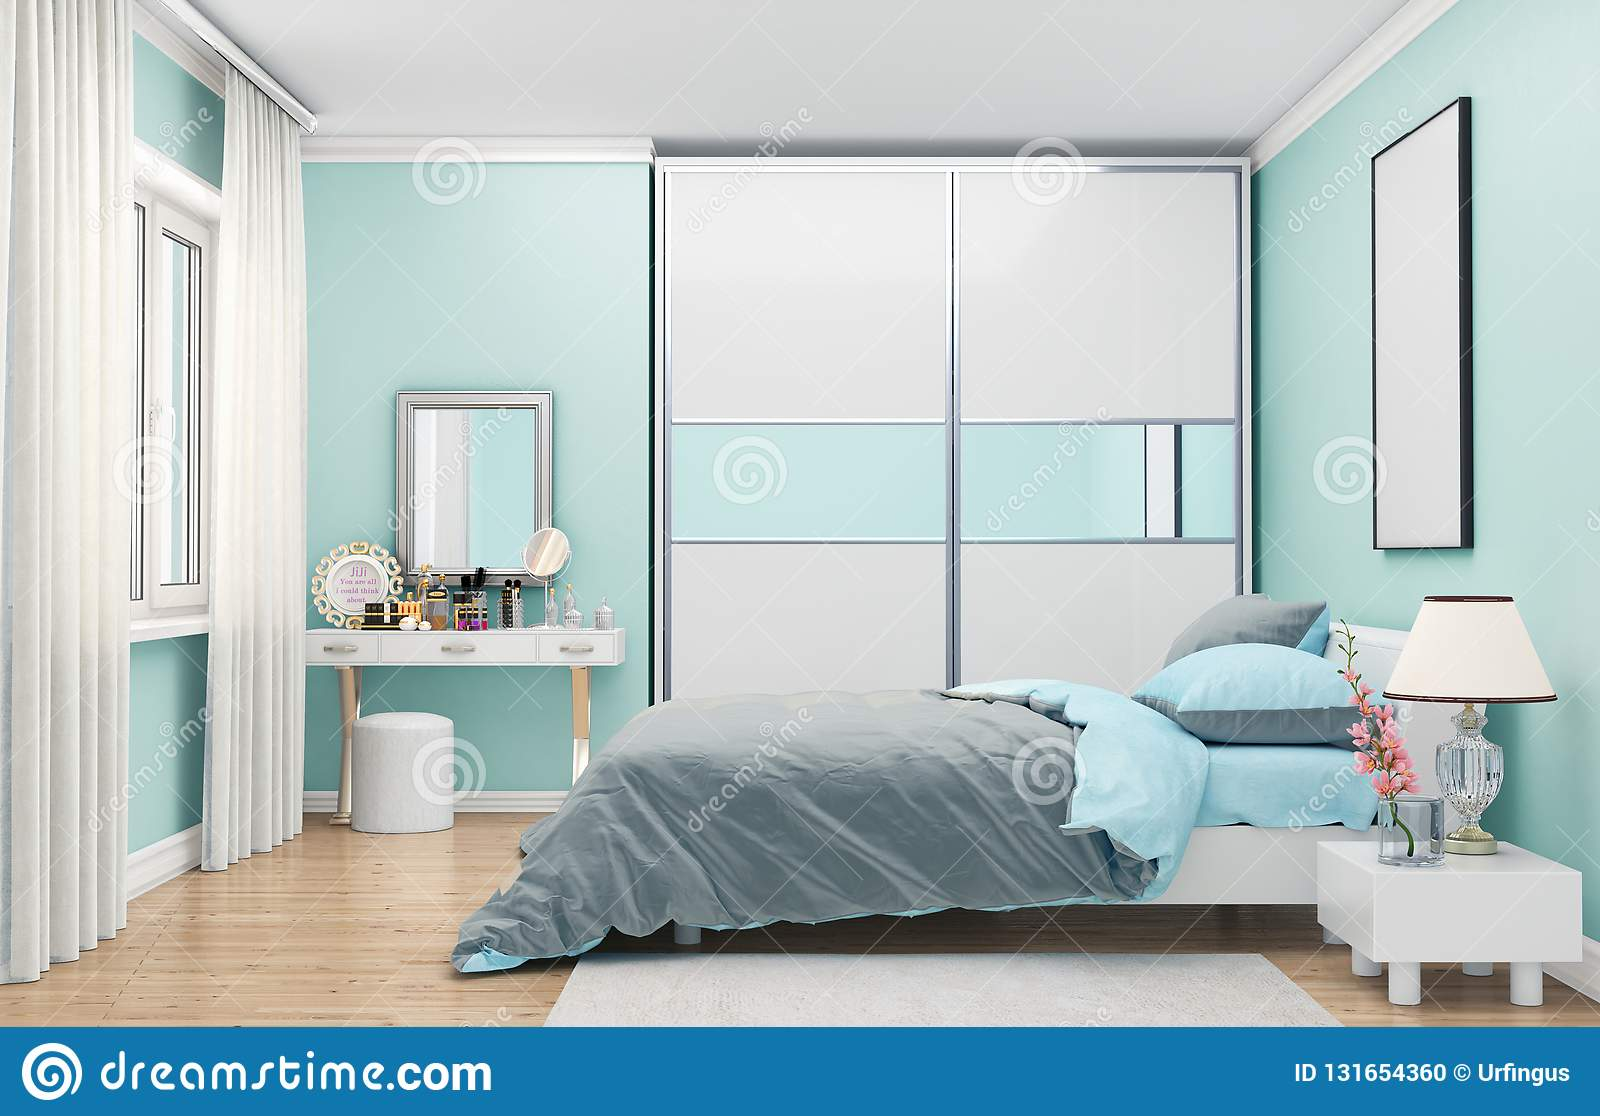 Bedroom In Soft Blue Colors, Wardrobe With Mirrored Doors ...